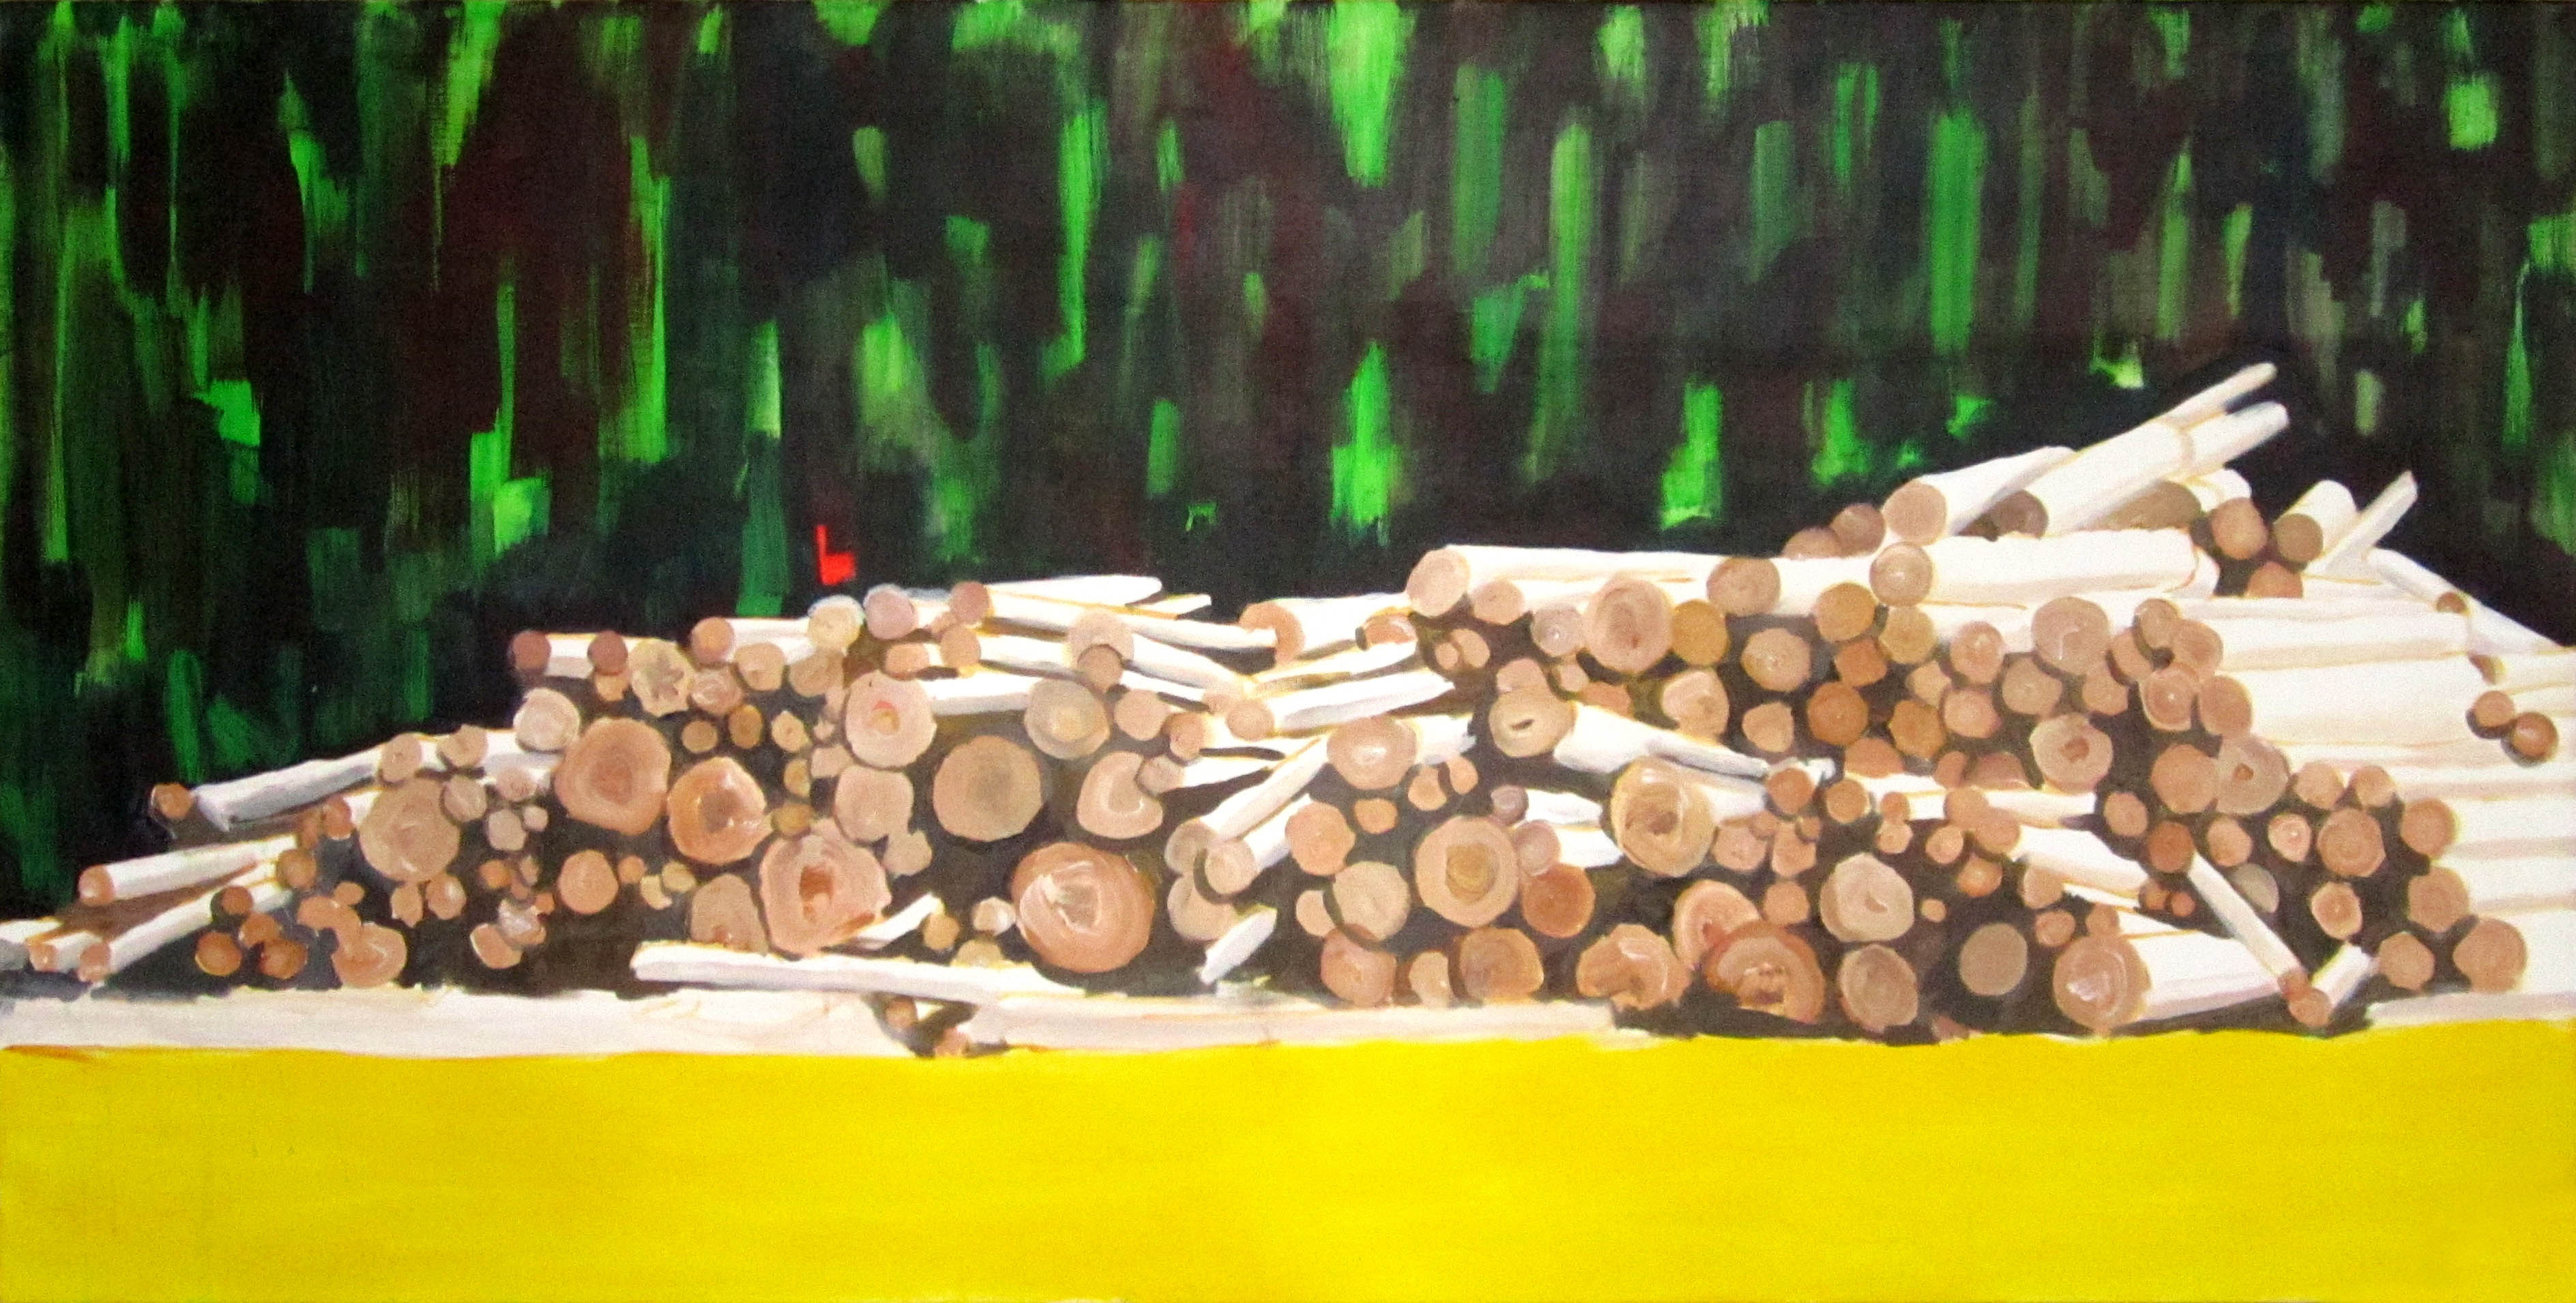 dřevo 2 / wood 2, 190x95 cm, akryl na plátně / acrylic on canvas, 2013